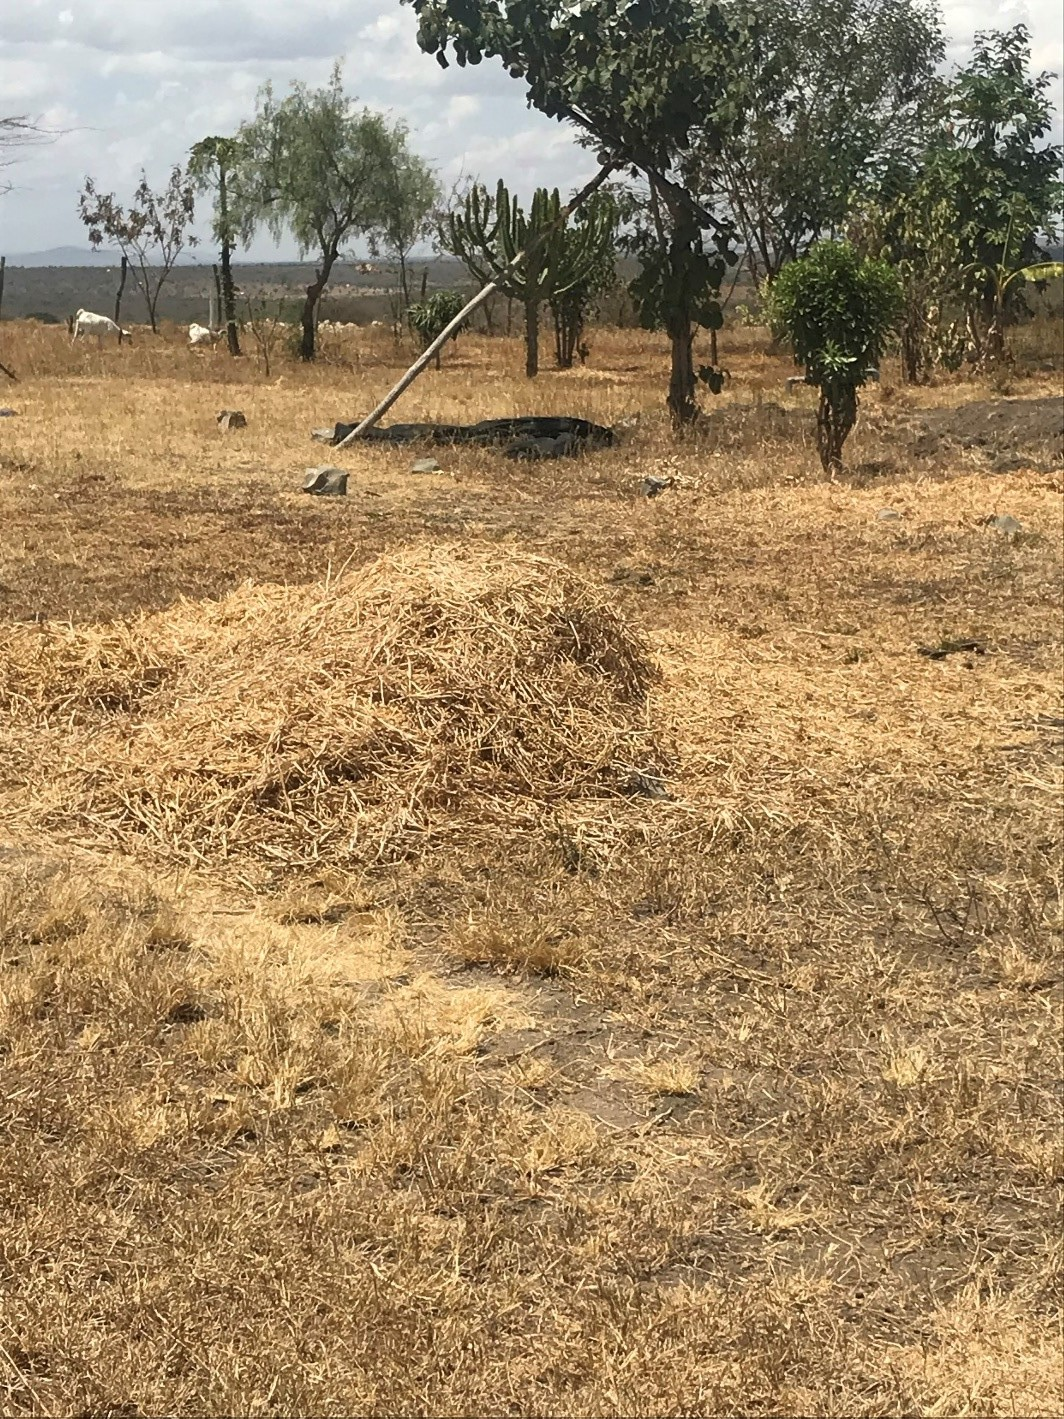 Freshly ground animal feed will nourish the community's livestock during the dry season.